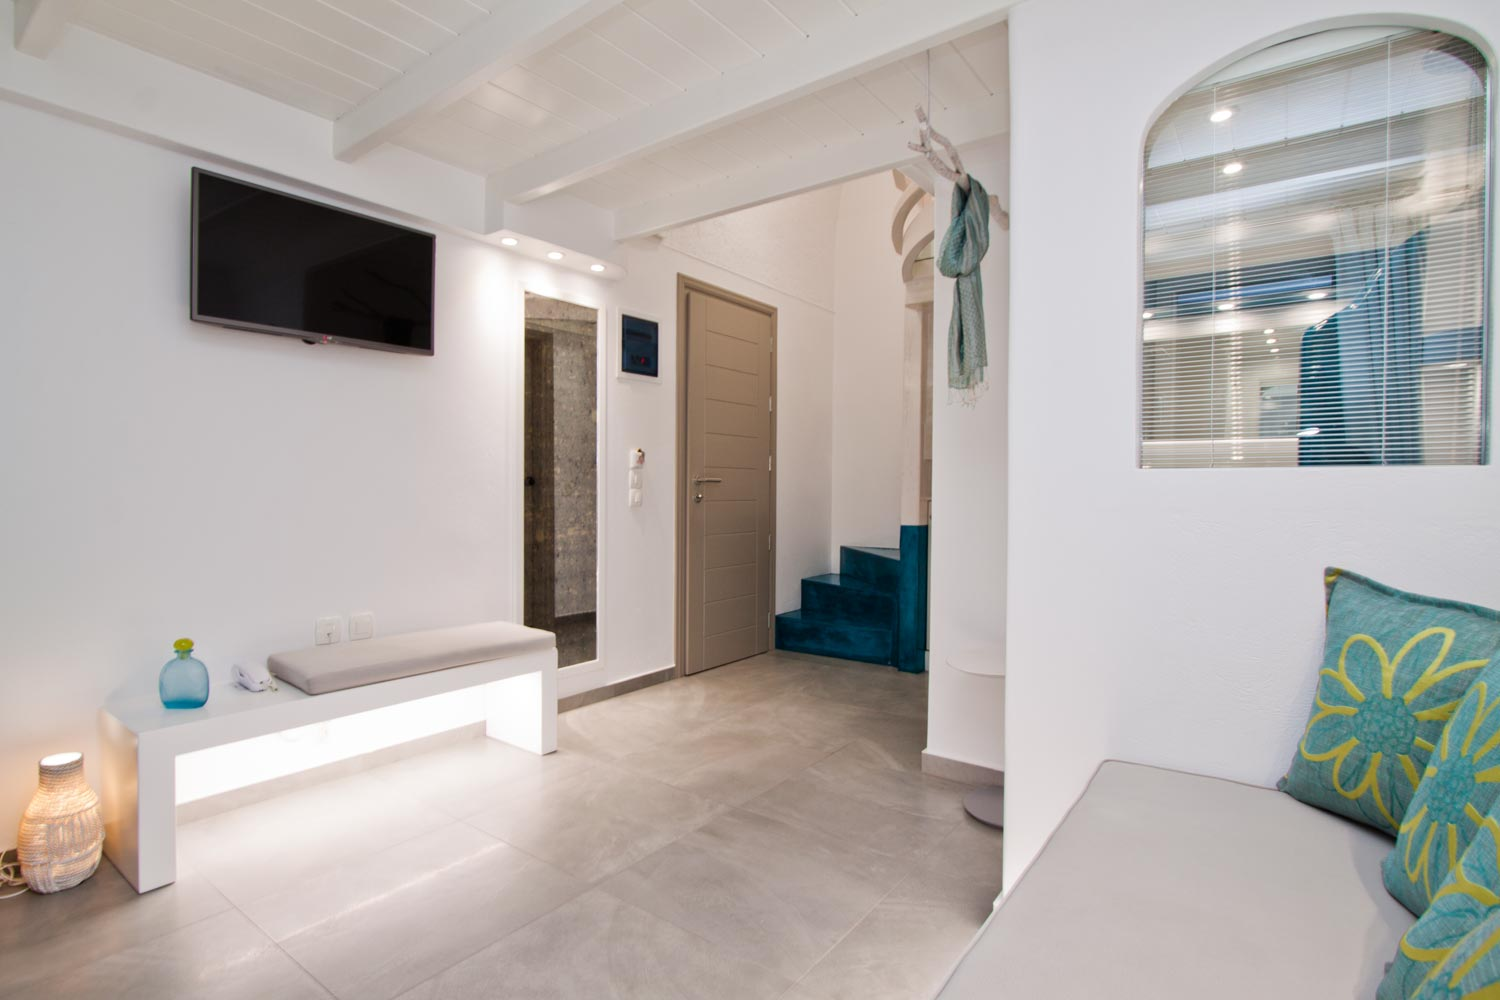 nemesis-accommodation-santorini-island-greece-studio-room9